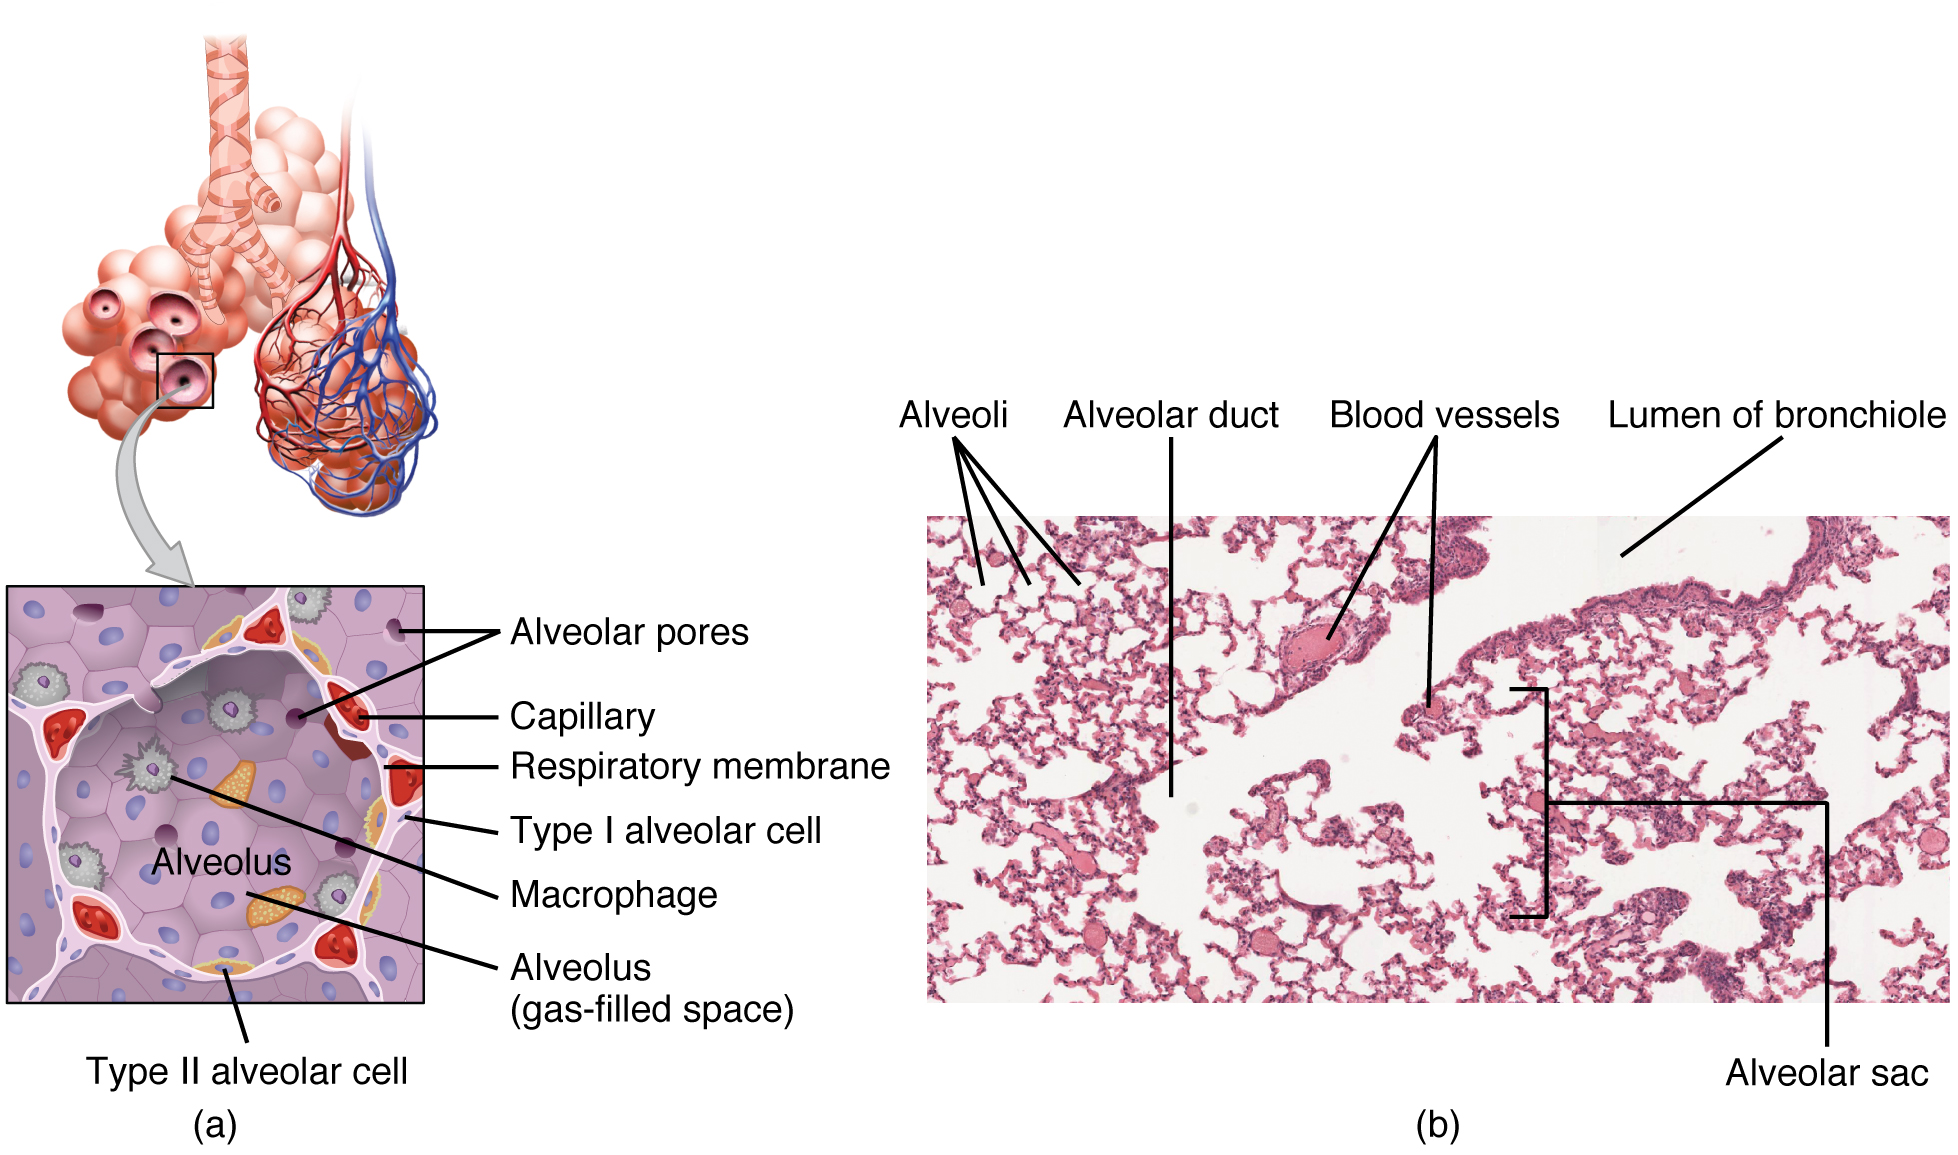 This figure shows the detailed structure of the alveolus. The top panel shows the alveolar sacs and the bronchioles. The middle panel shows a magnified view of the alveolus, and the bottom panel shows a micrograph of the cross section of a bronchiole.